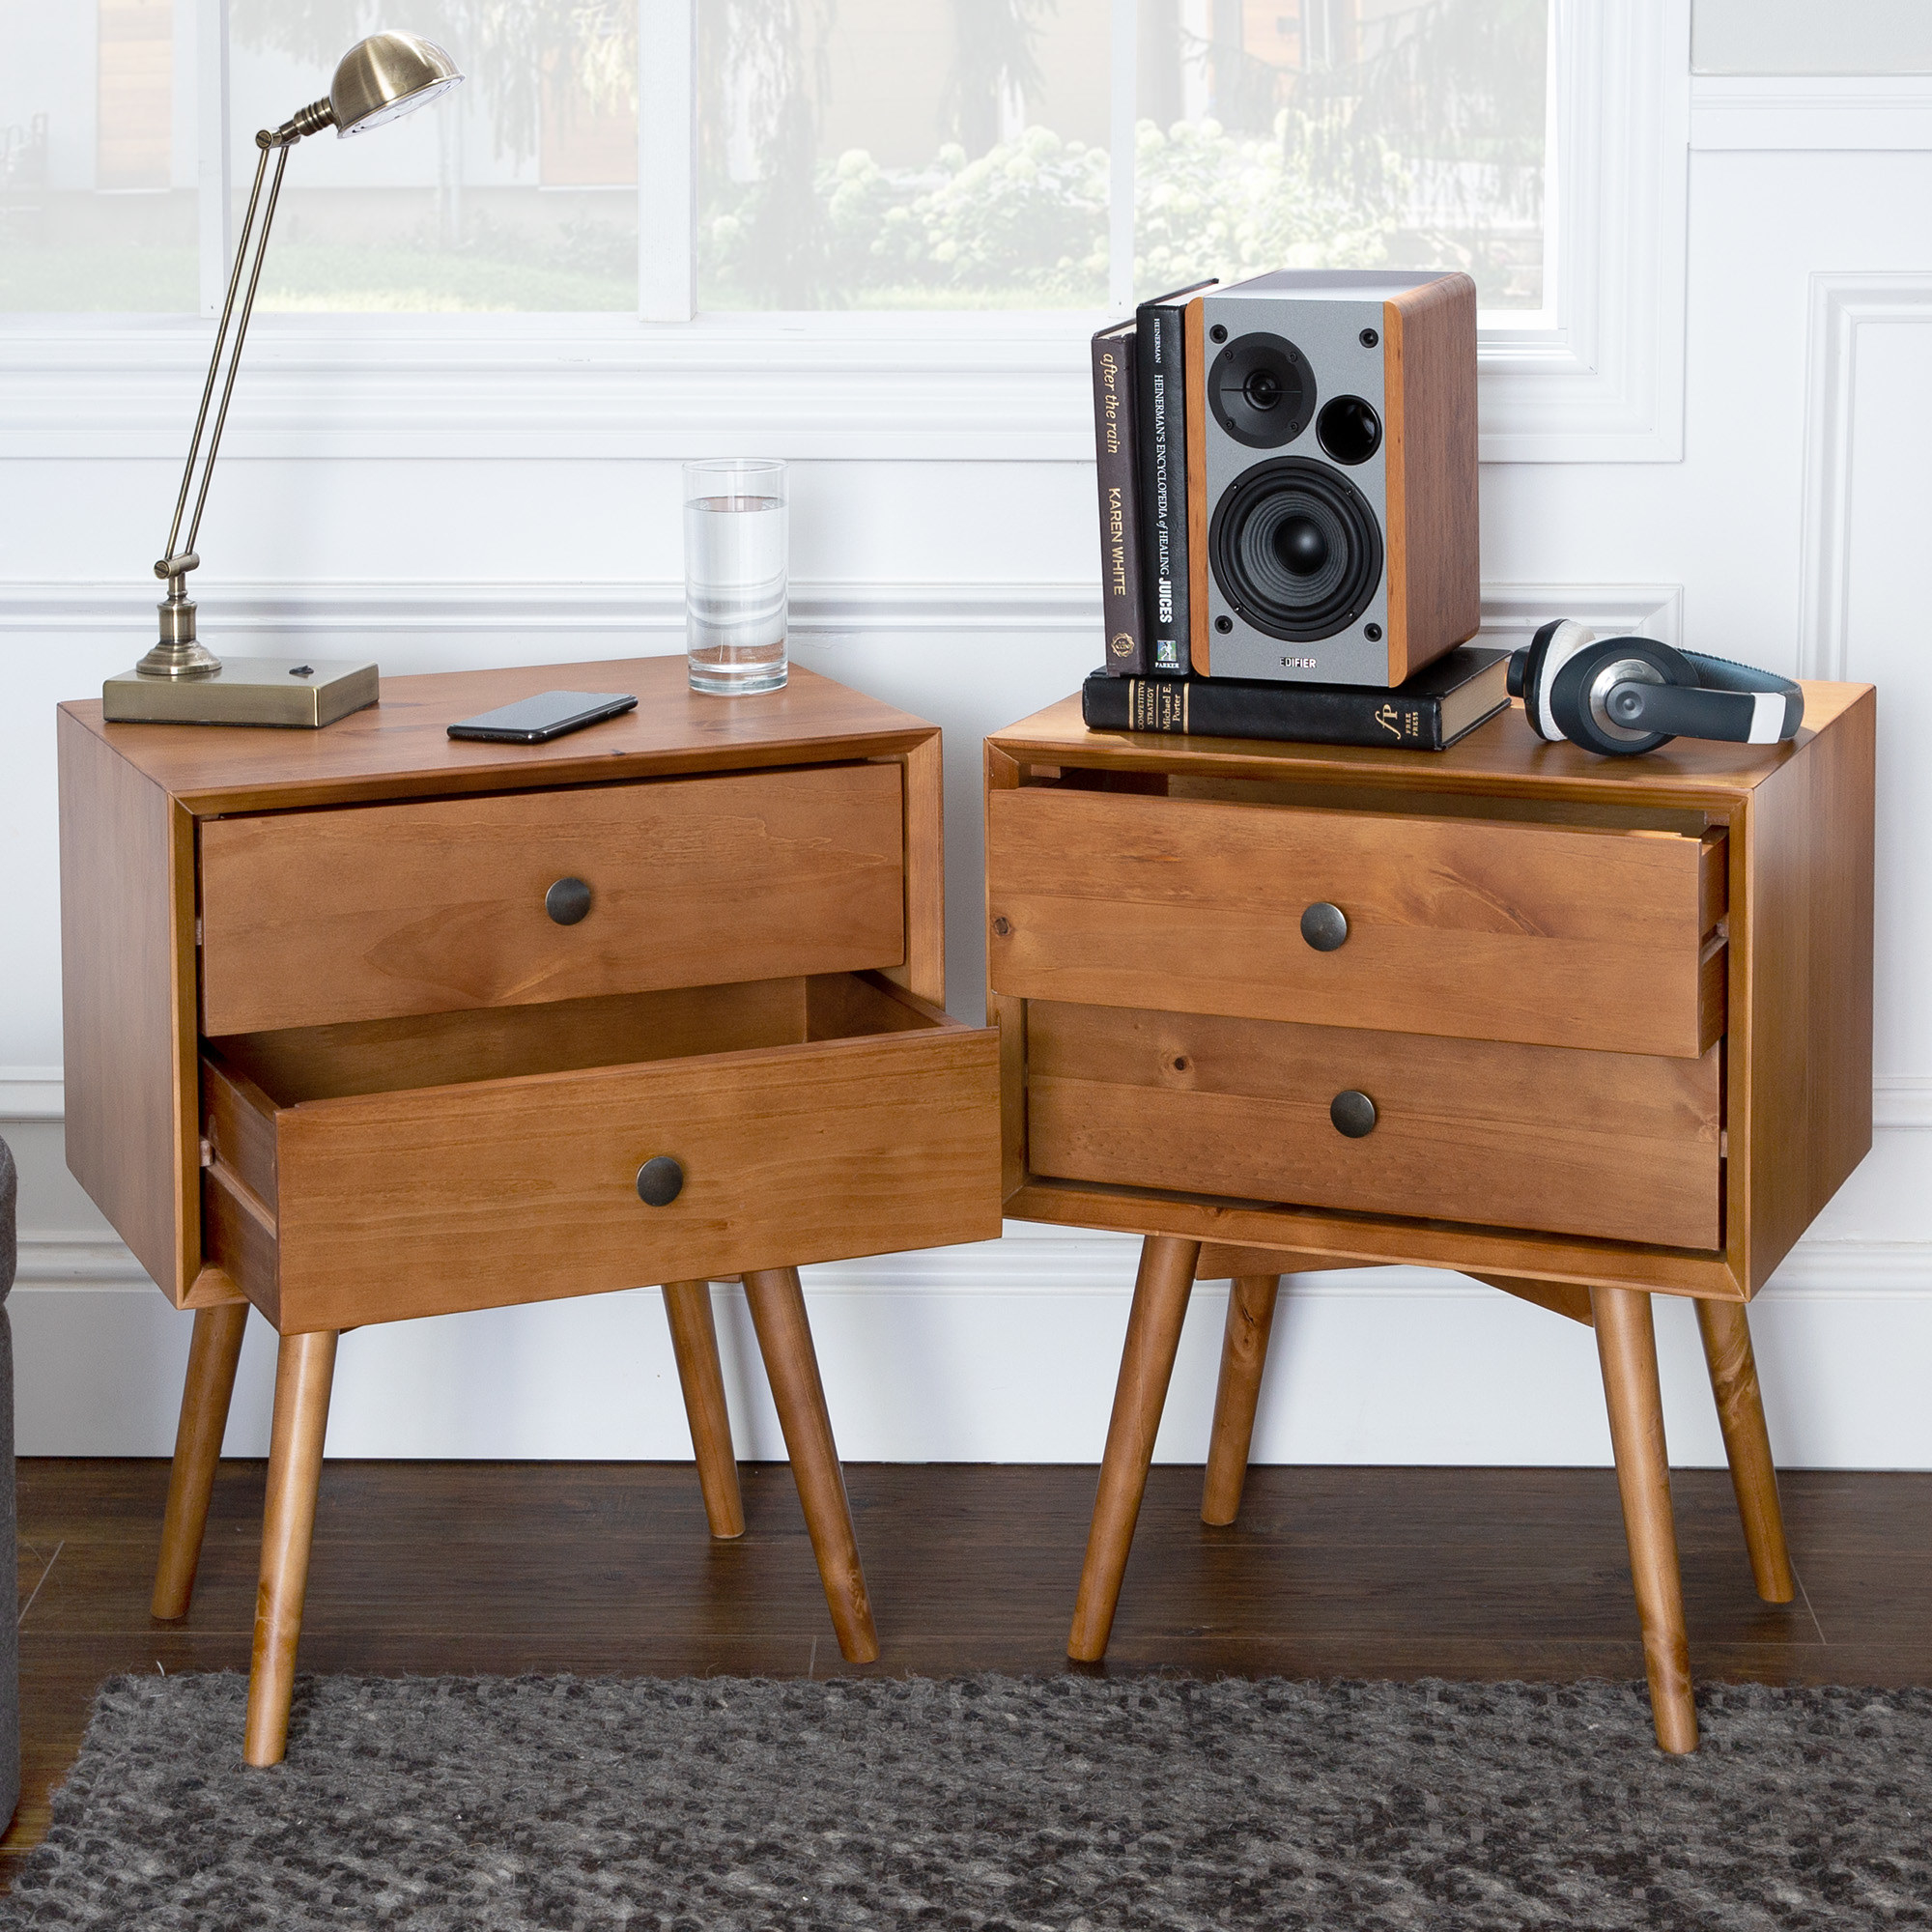 The two nightstands, which have four thin splayed legs, two drawers each, and a low, rectangular silhouette